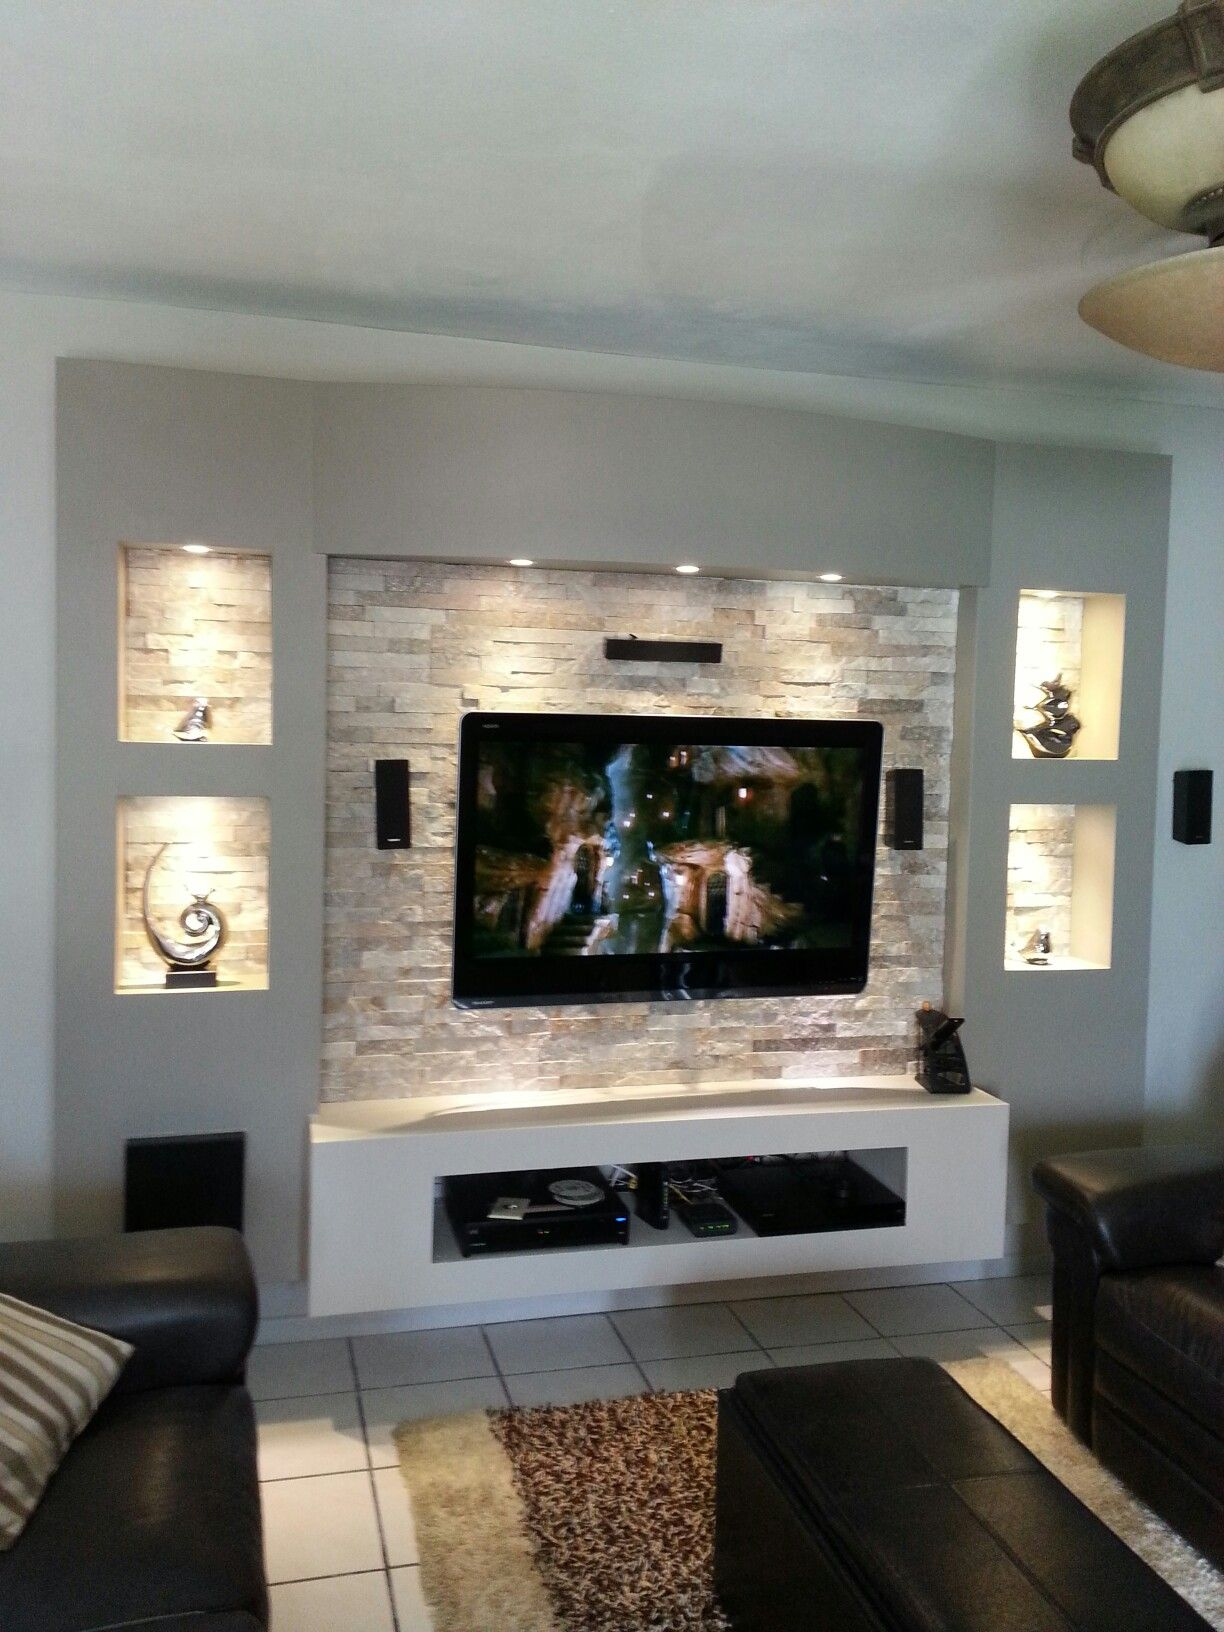 Innovaci n tv unit my own projects pinterest tv units tvs and living rooms Small living room designs with tv